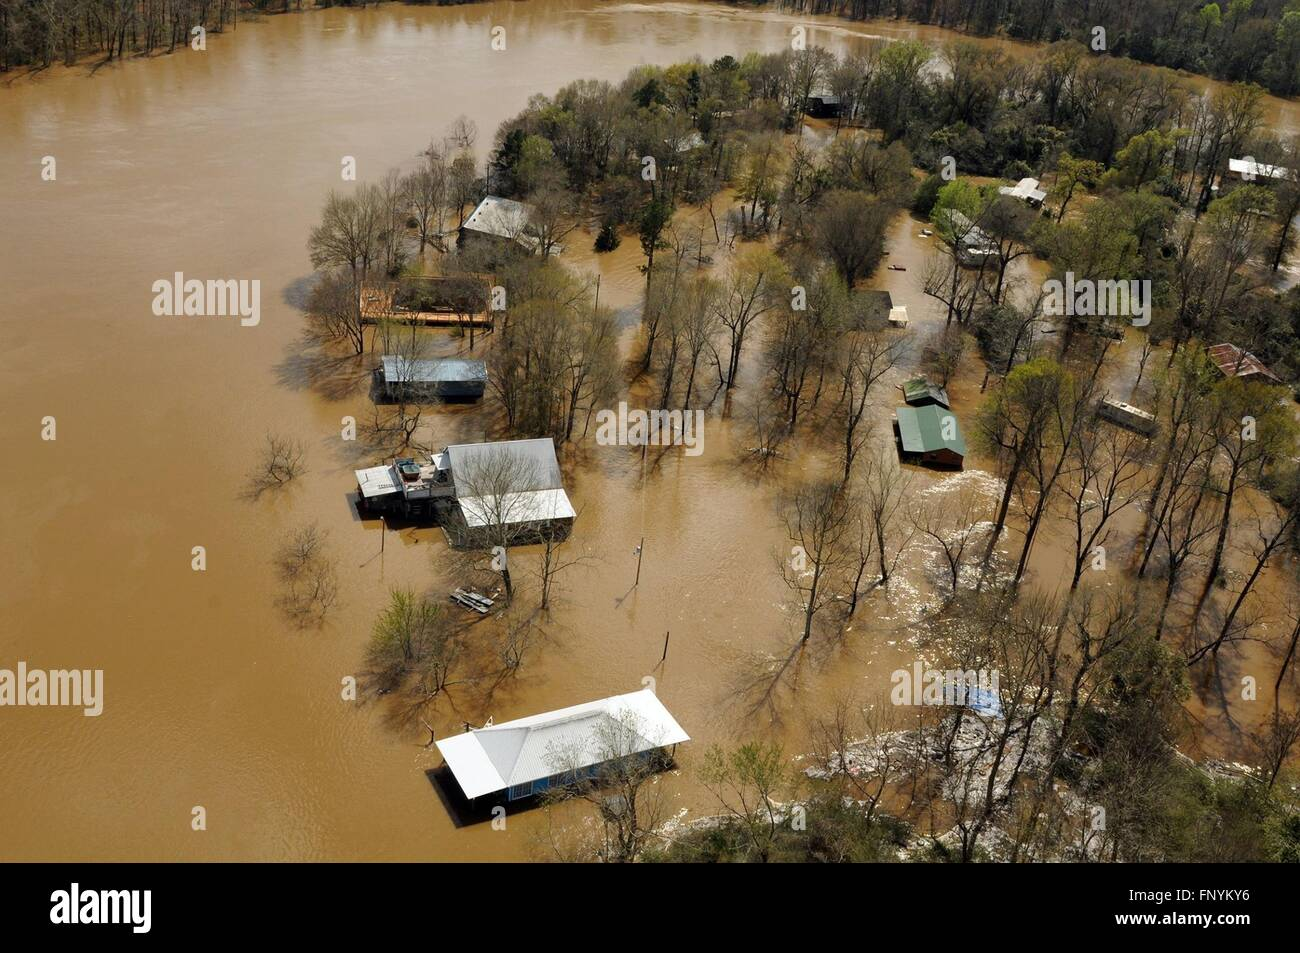 Aerial view of homes submerged in floodwaters along the Pearl and Leaf Rivers after record breaking storms dumped Stock Photo